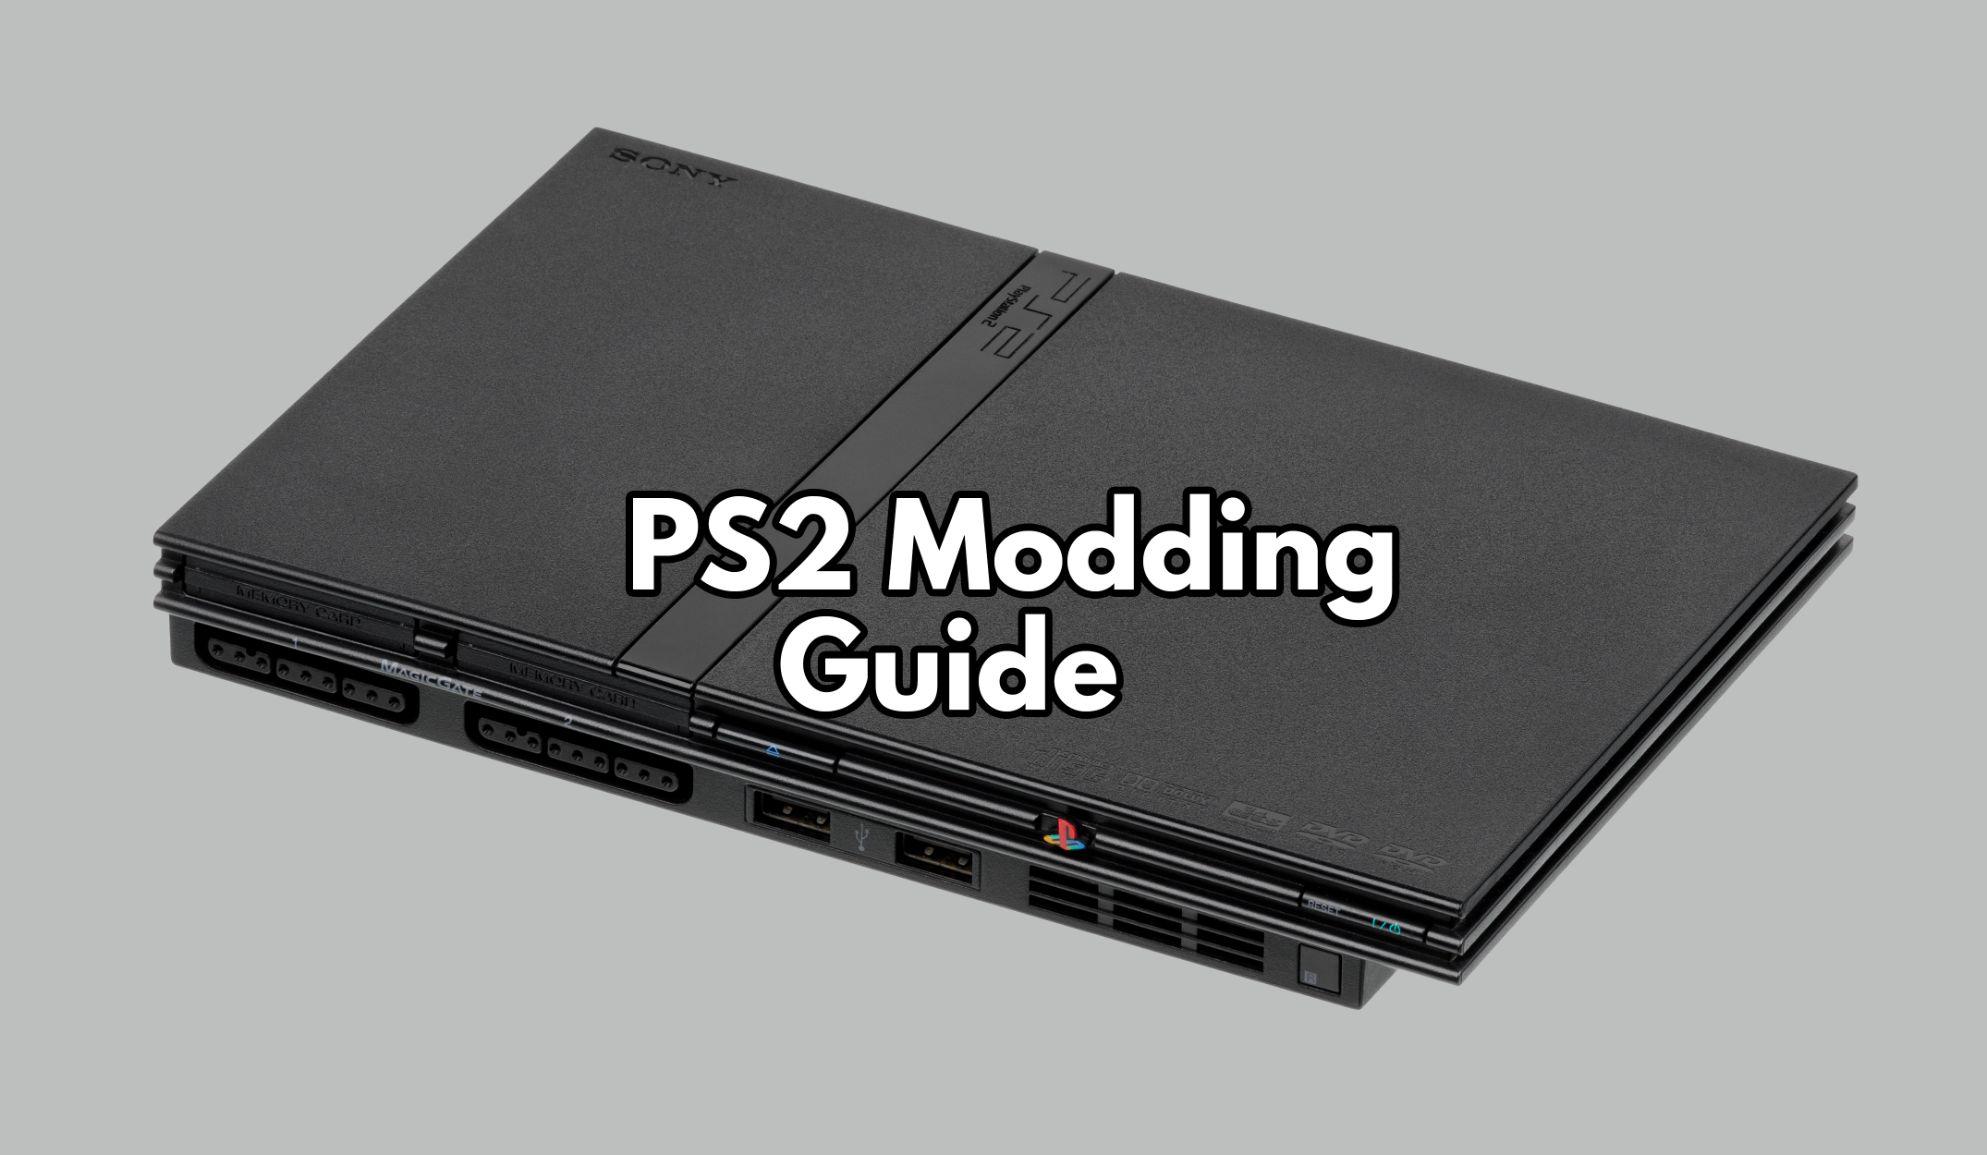 Sony-PlayStation-2-modding